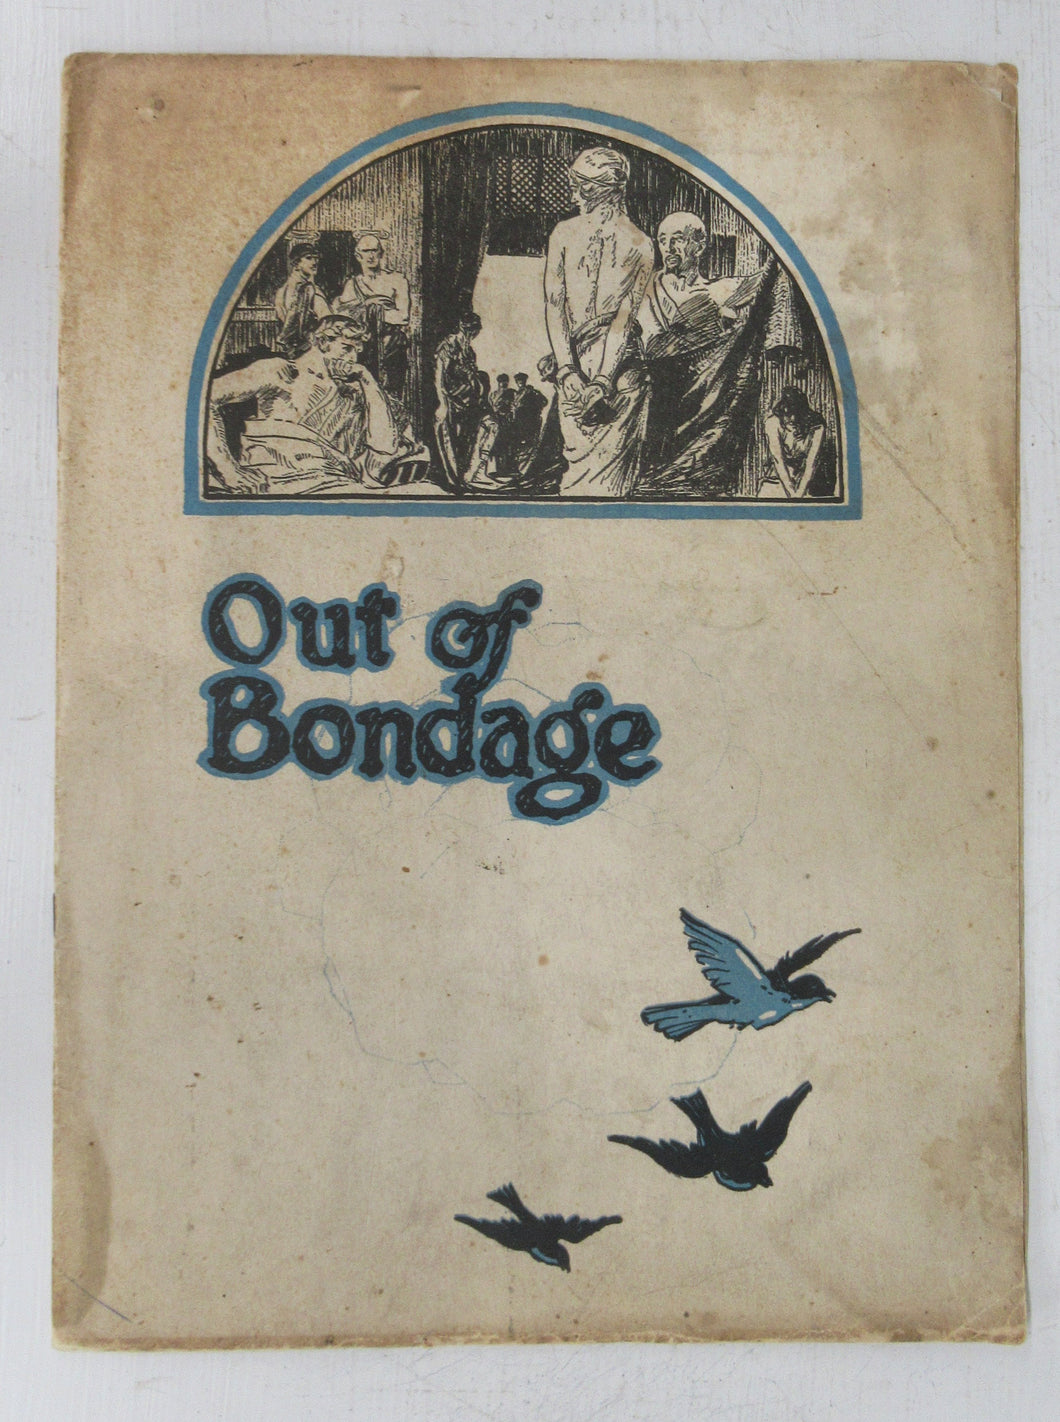 Out of Bondage (BlueBird washing machine catalogue)